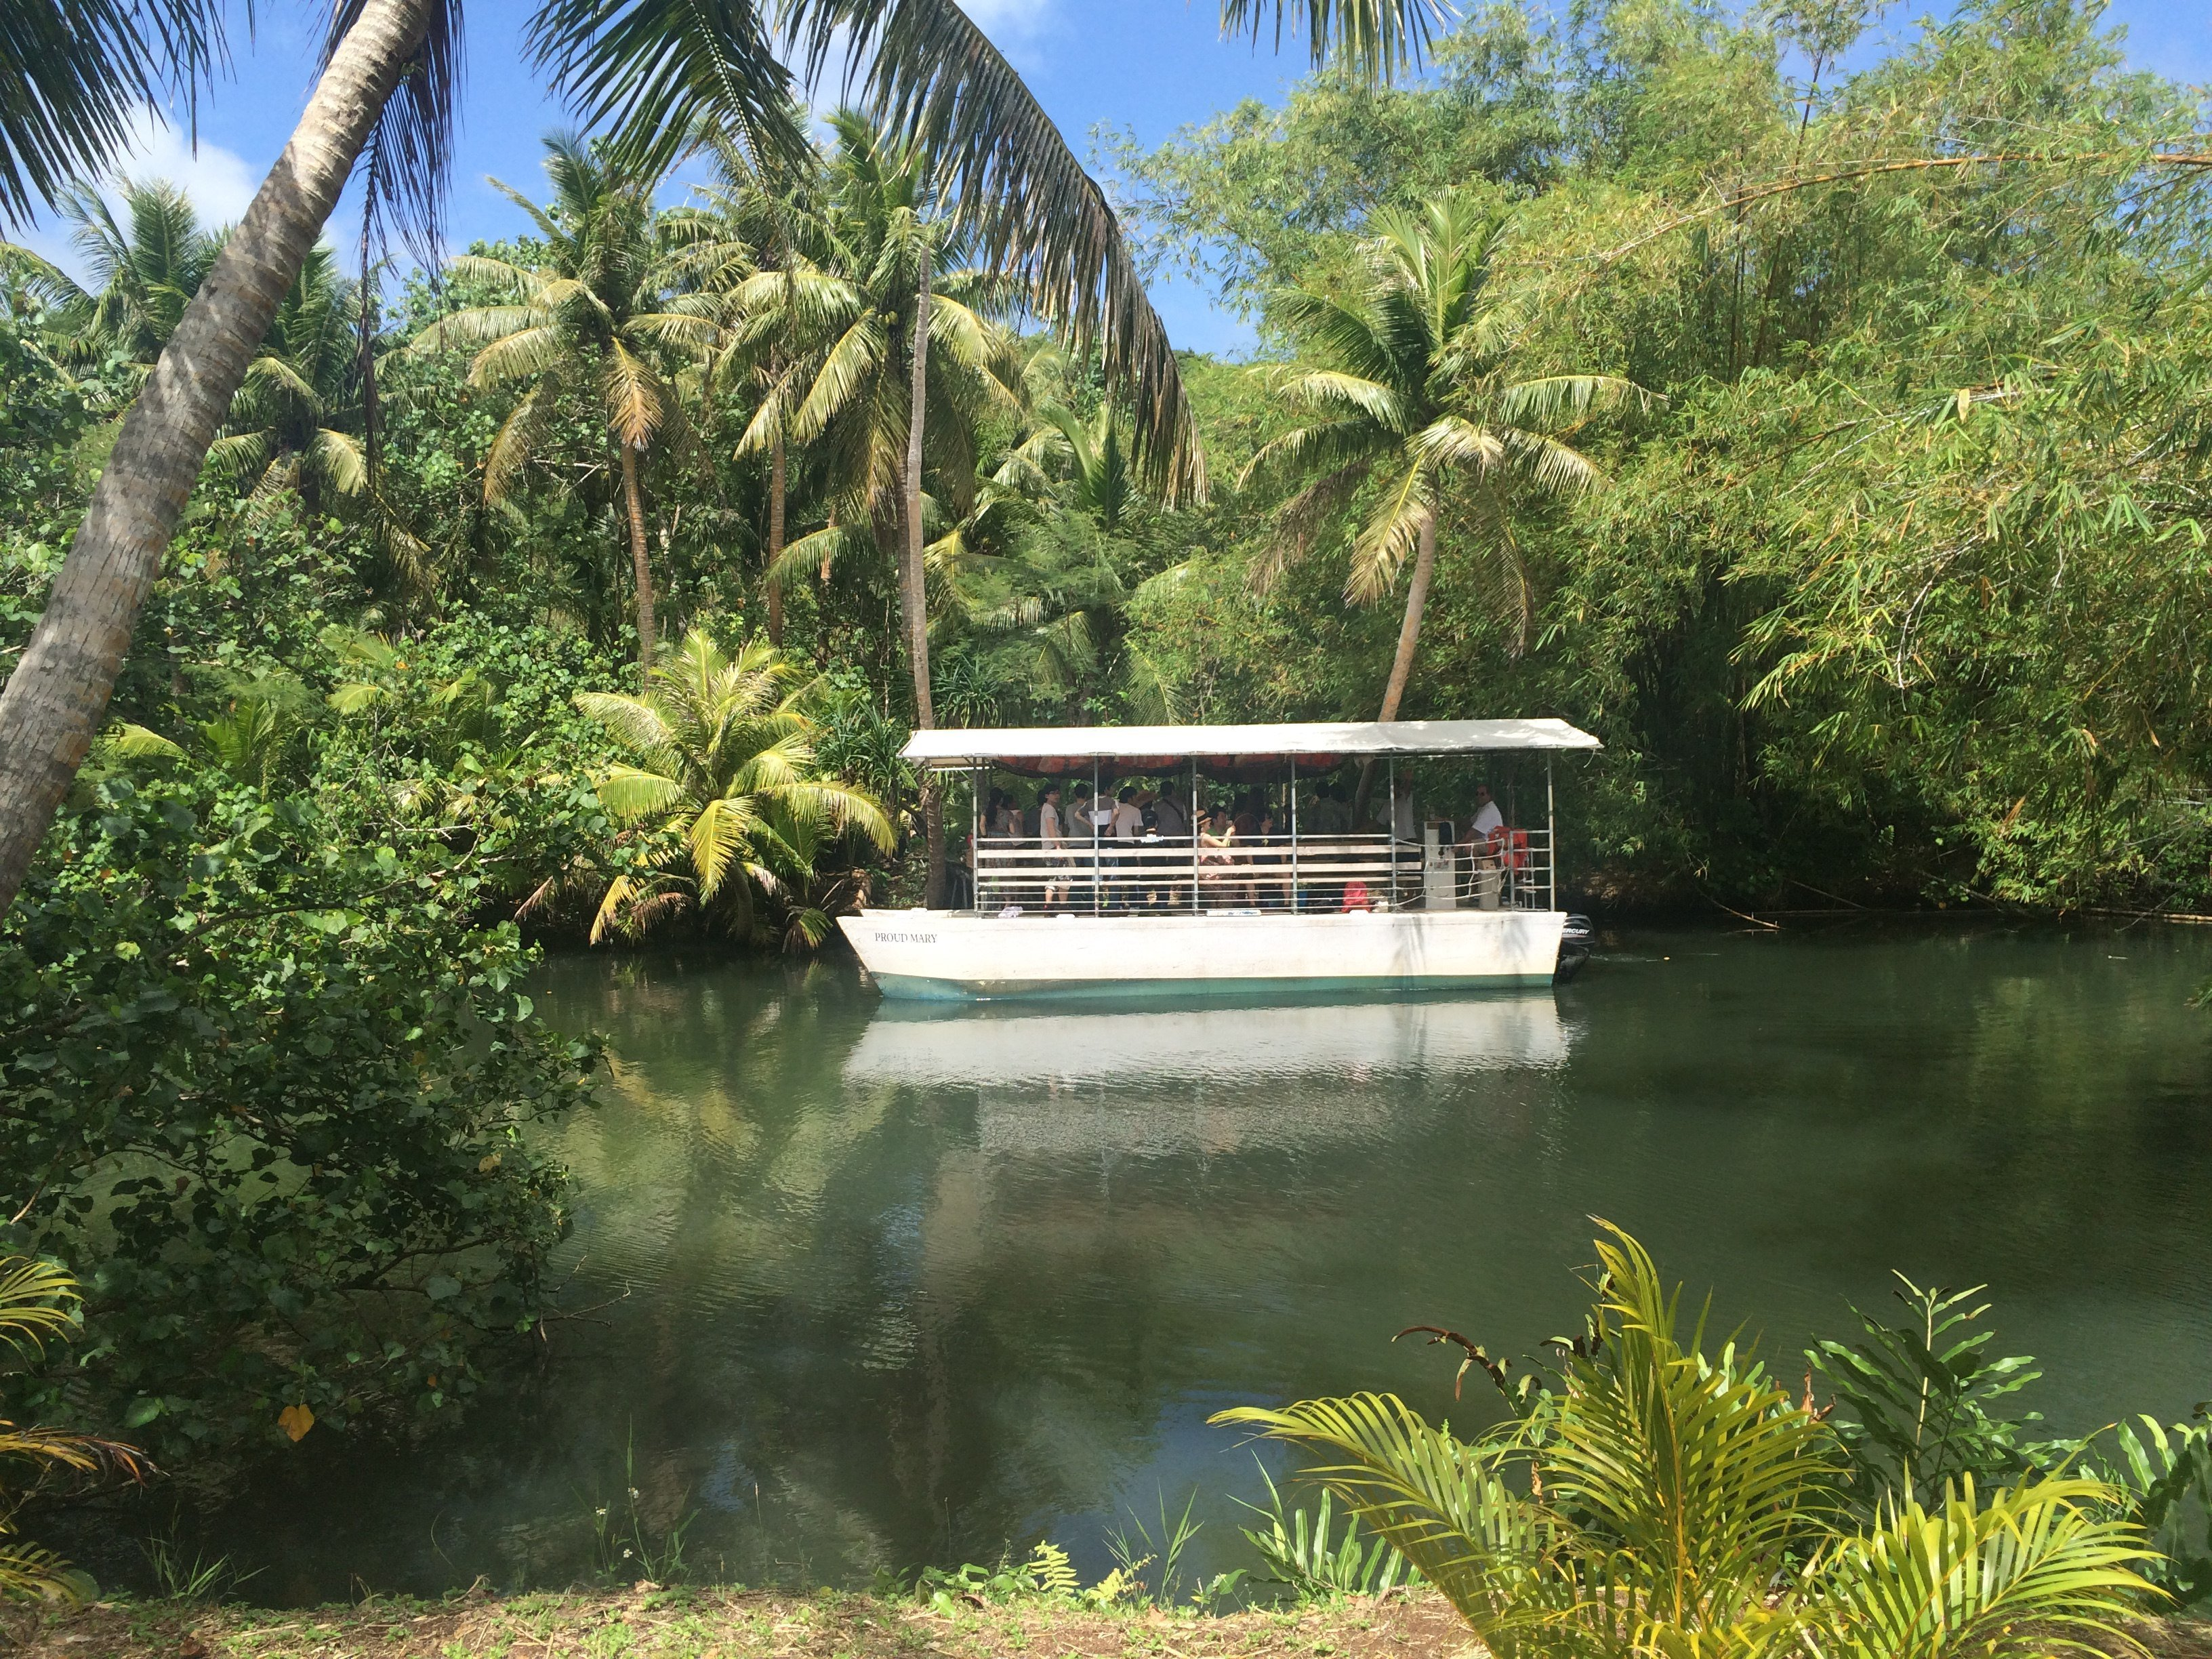 Guam, Things to do, Valley of the Latte, Tours, Activities, Adventure Riverboat Cruise